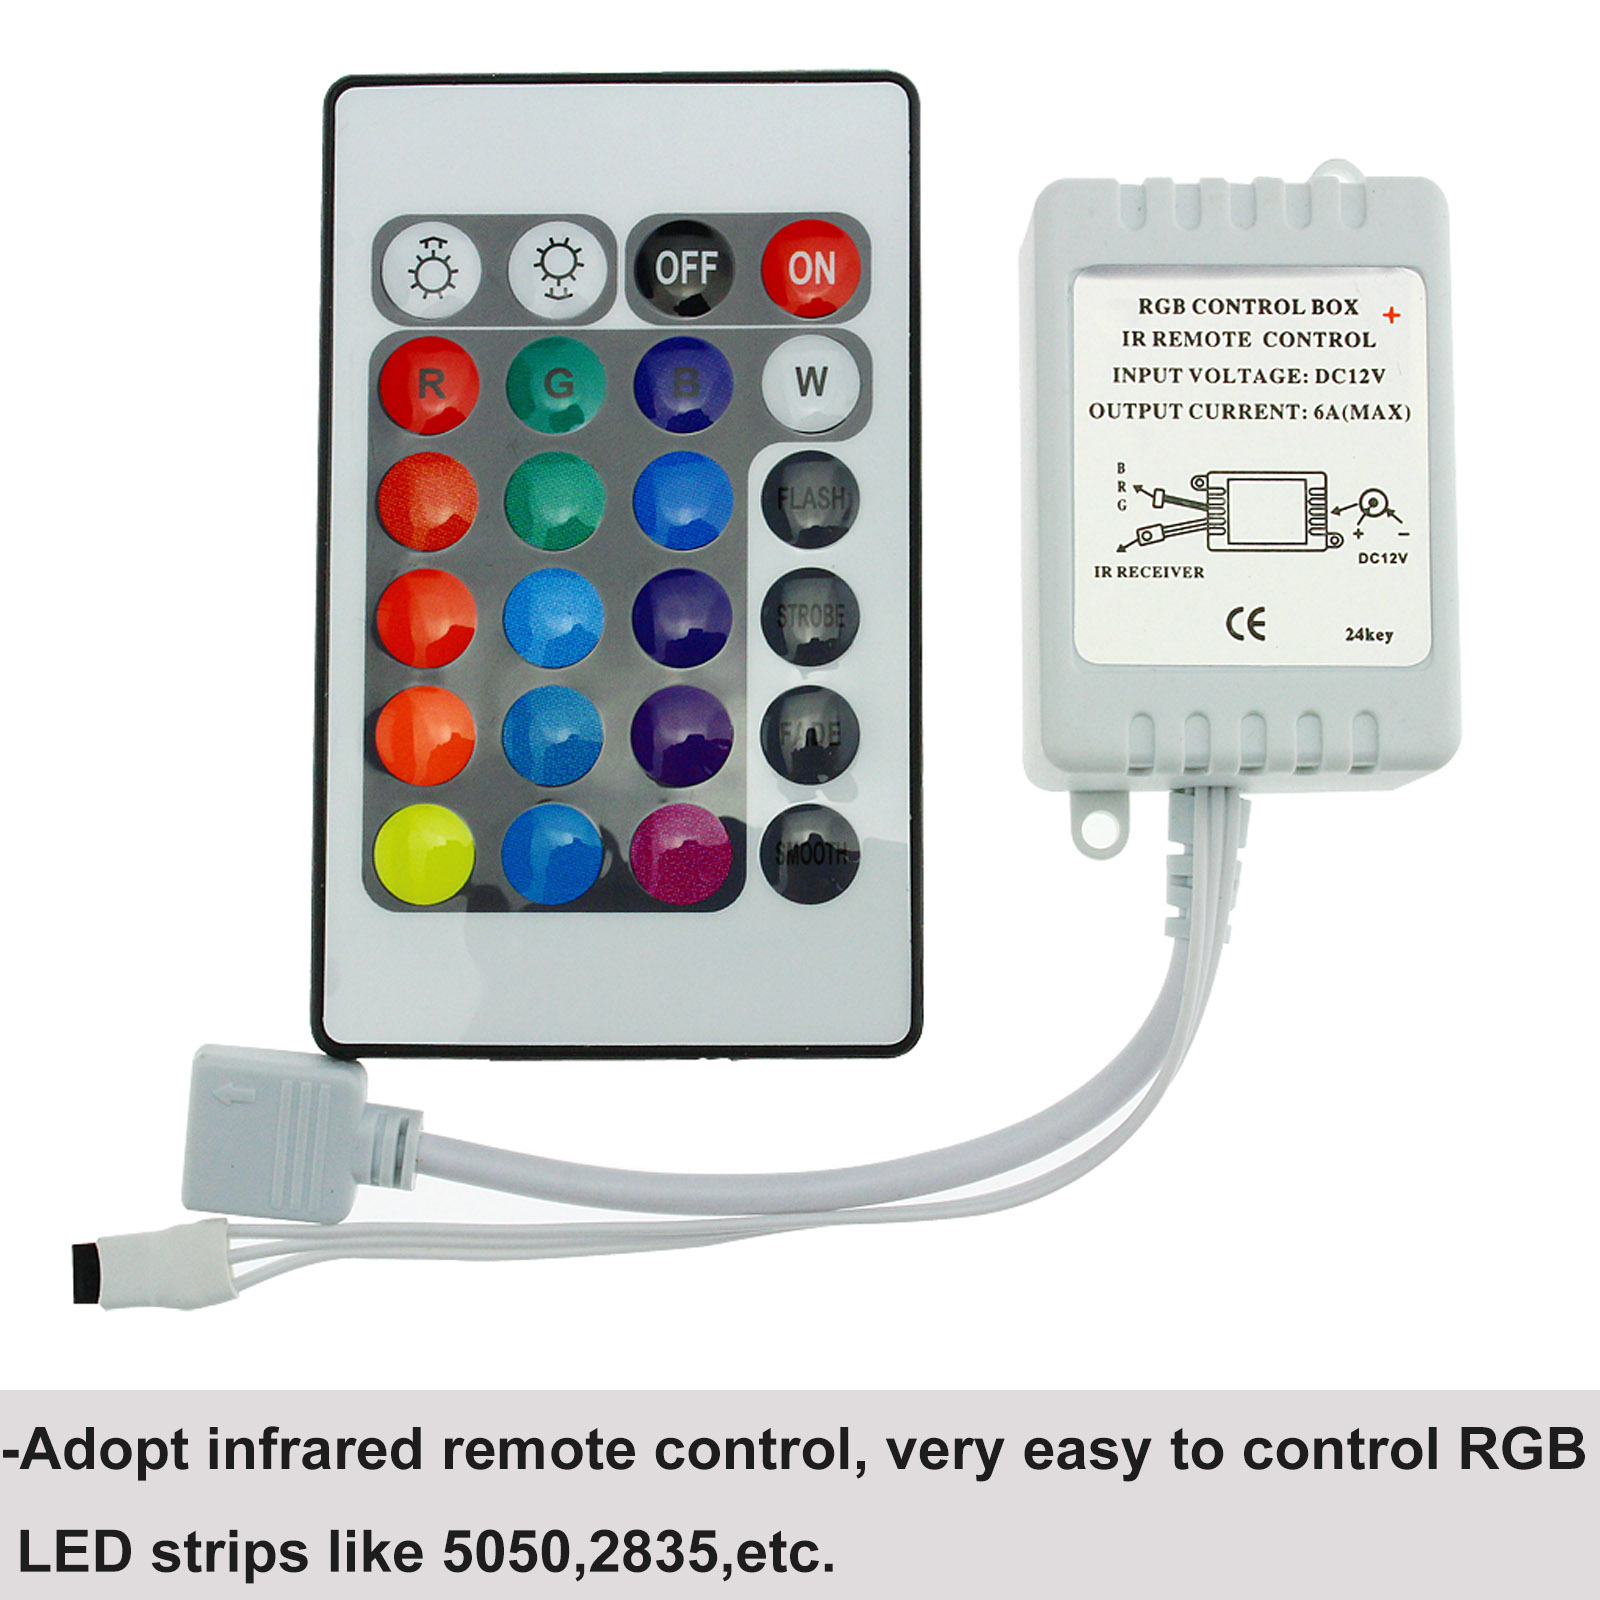 12v 24 Key Ir Remote Controller With Box For 3528 5050 Smd Rgb Led Circuit Series 5b15dledcircuitjpgd Strip Lights